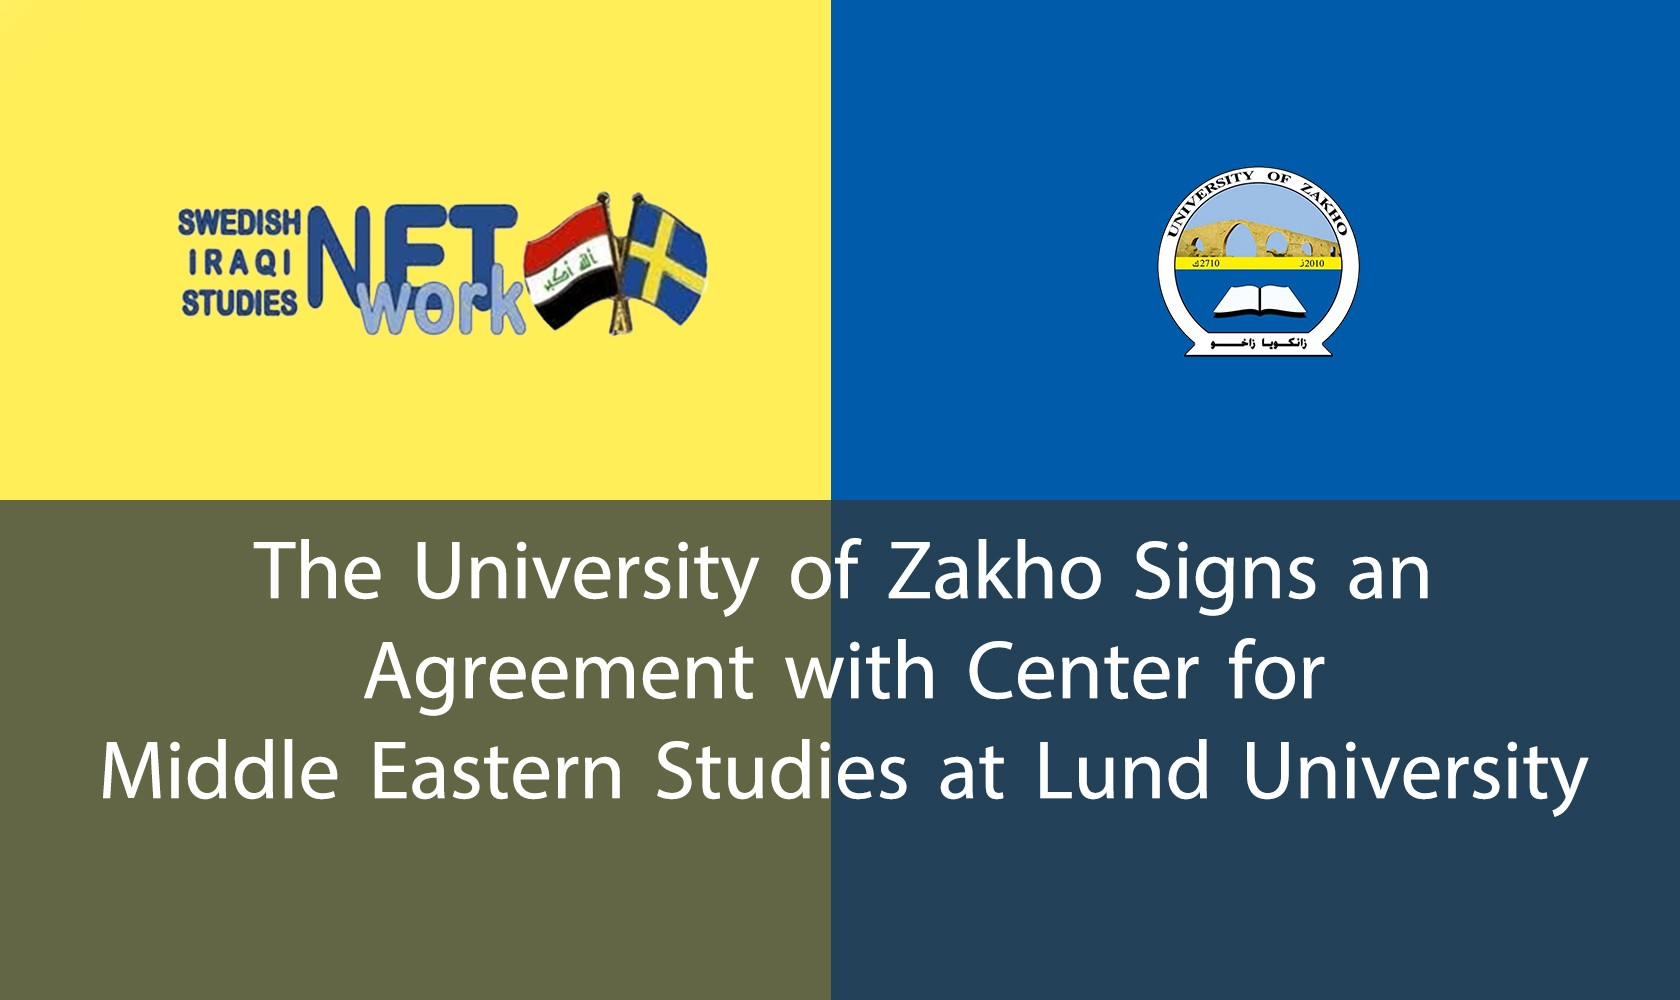 UoZ Signs an Agreement with Center for Middle Eastern Studies at Lund University